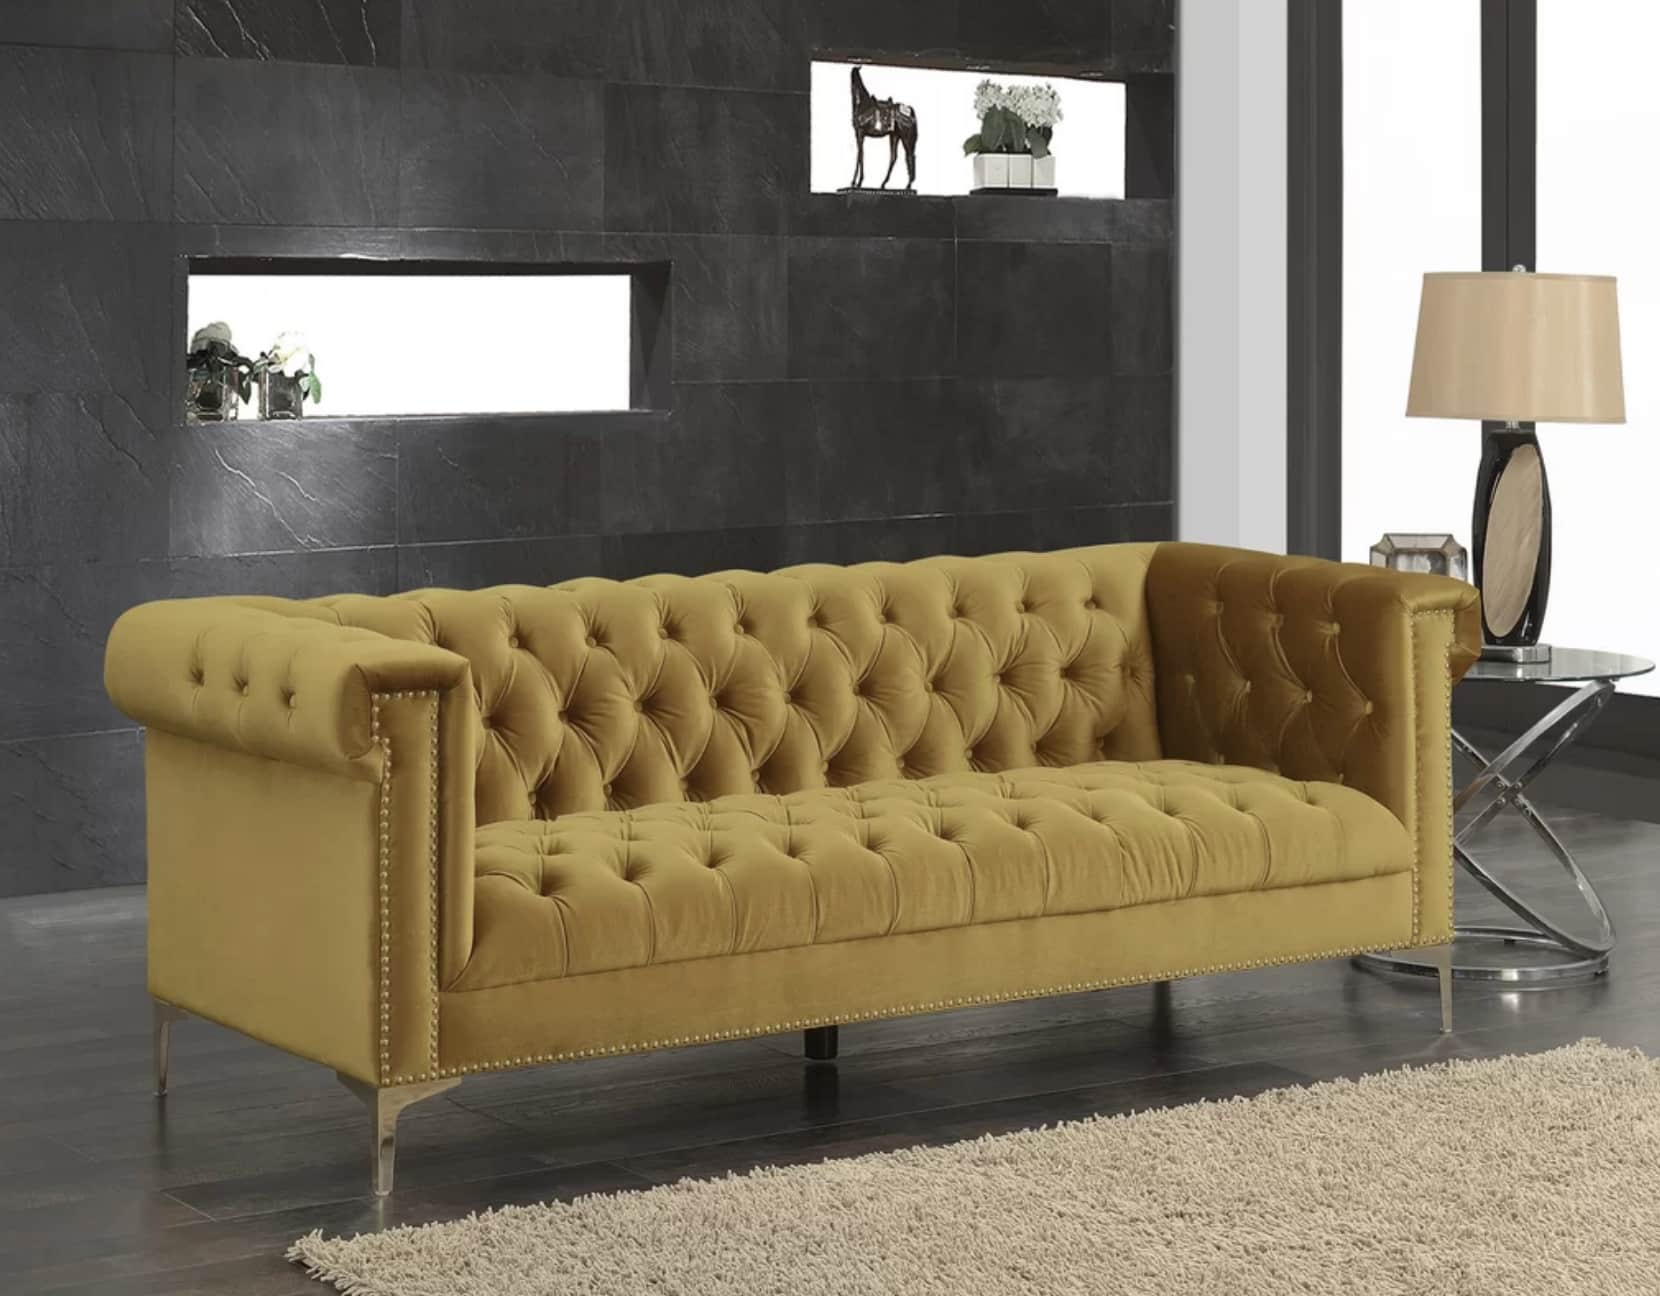 Mercer41 Batts Polyester Chesterfield Sofa 84999 Image Credit Wayfair